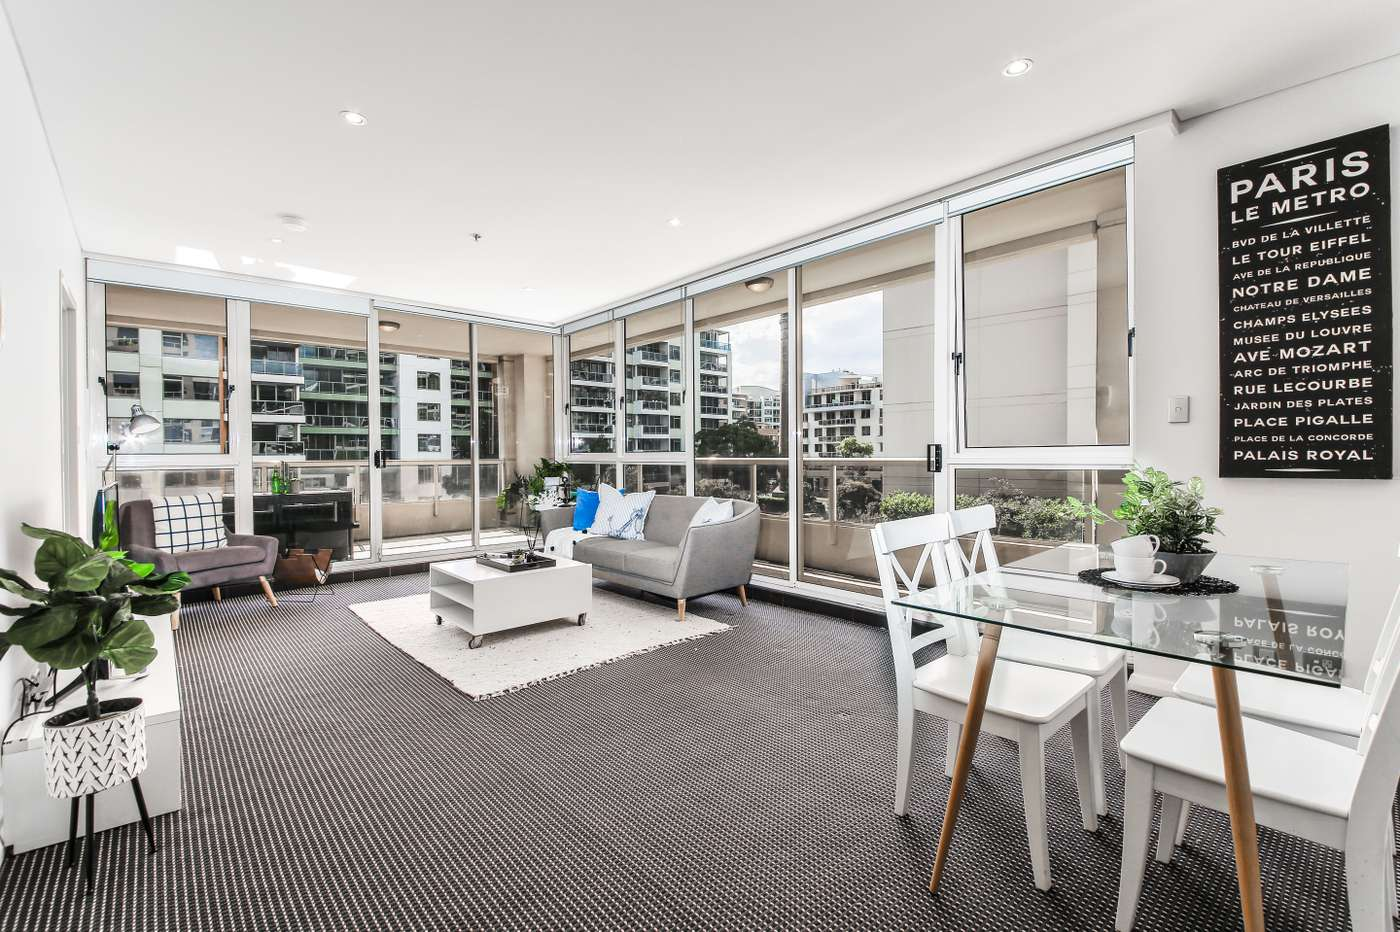 Main view of Homely apartment listing, 285/8 Lachlan Street, Waterloo, NSW 2017